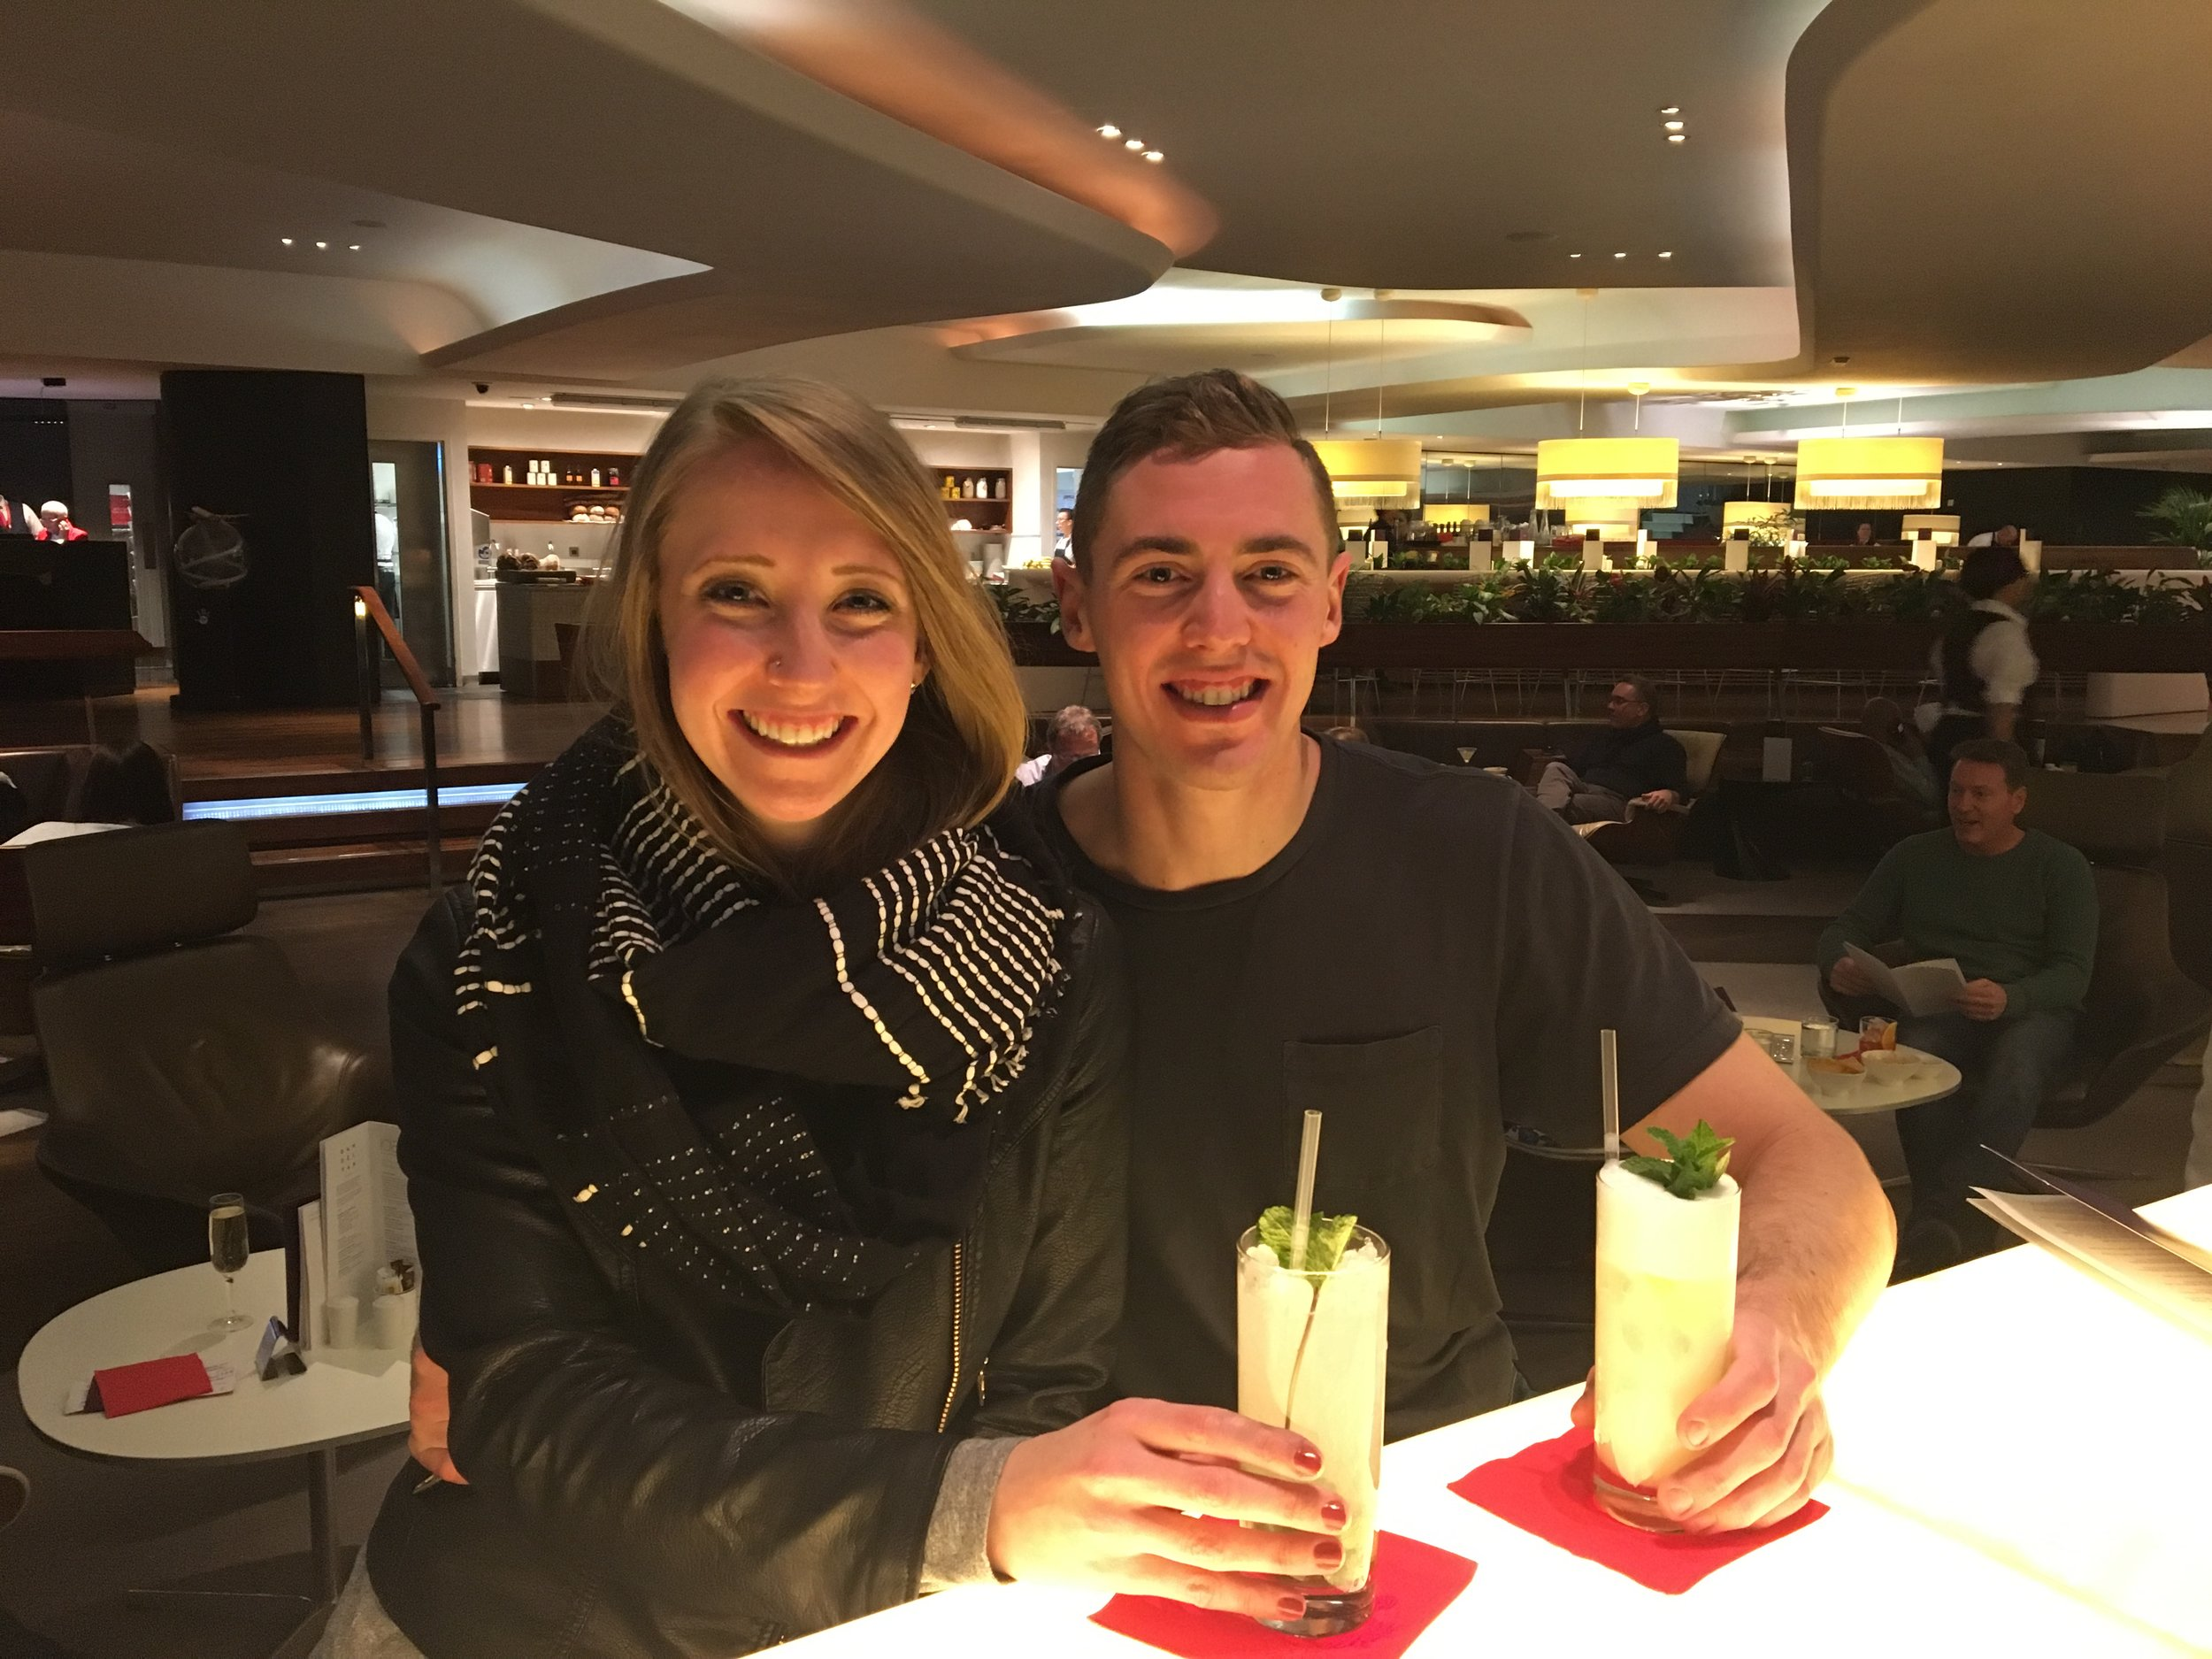 ENJOYING SOME COCKTAILS AT THE VIRGIN ATLANTIC CLUBHOUSE